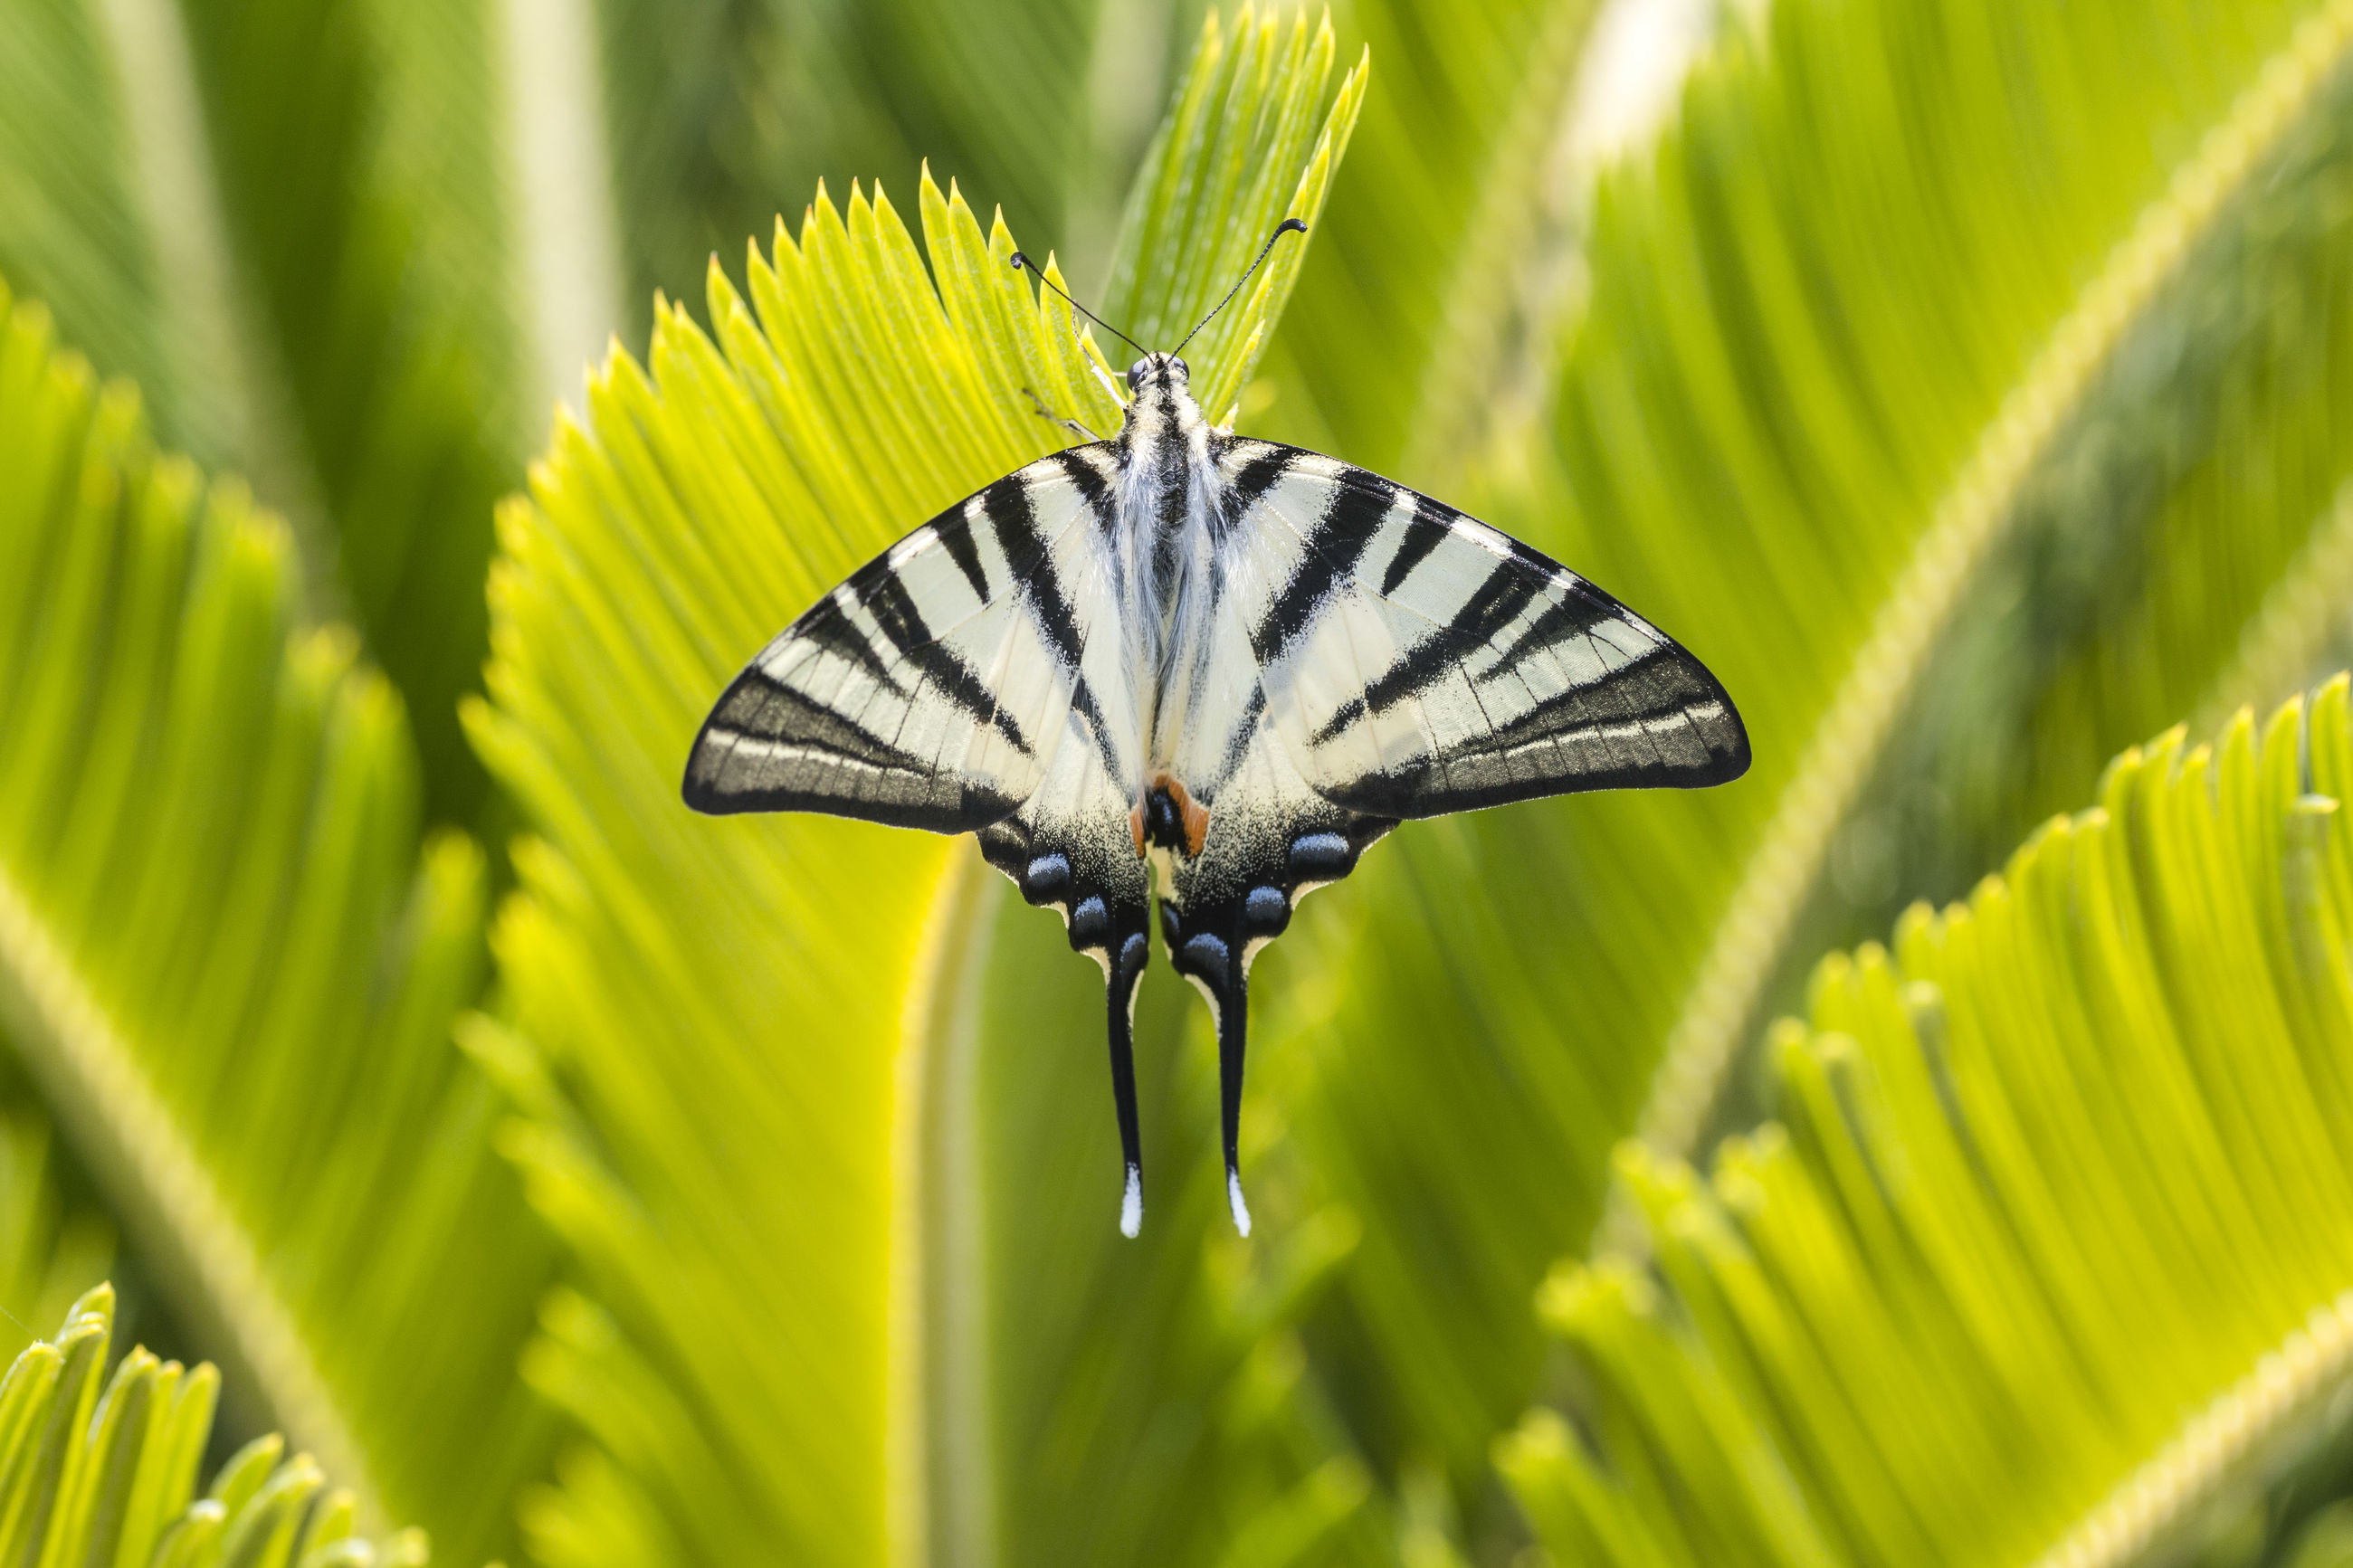 animal themes, one animal, insect, animals in the wild, leaf, green color, butterfly - insect, animal wildlife, nature, butterfly, no people, close-up, day, growth, plant, outdoors, beauty in nature, fragility, spread wings, freshness